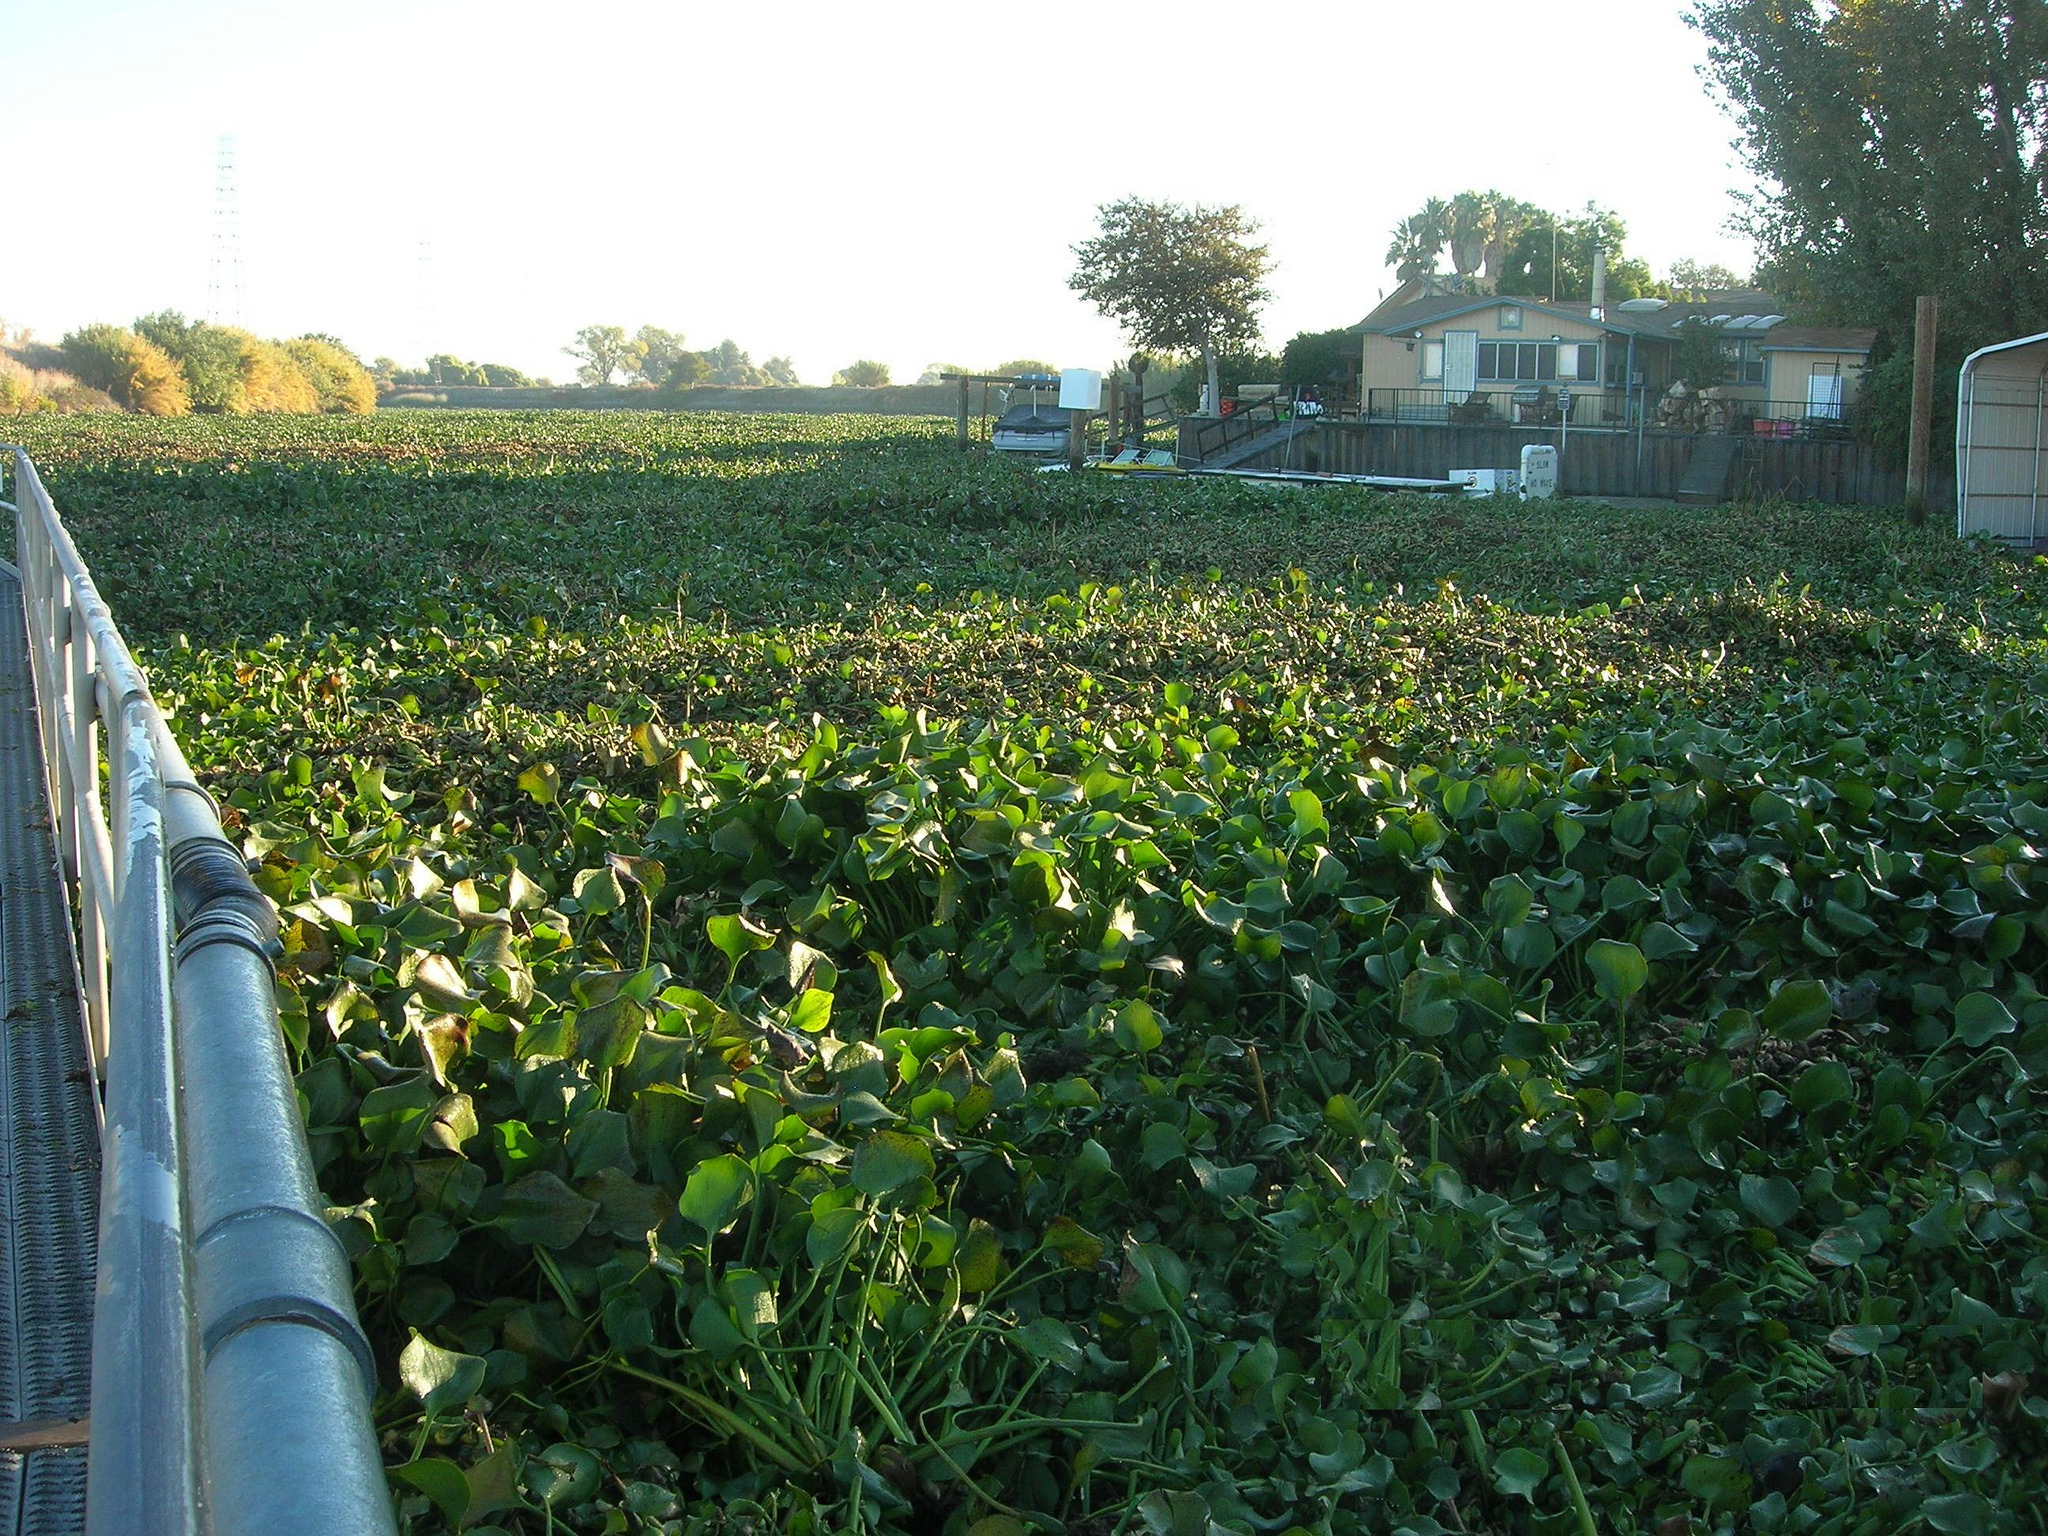 Water hyacinth (Eichhornia crassipes) in the San Joaquin River